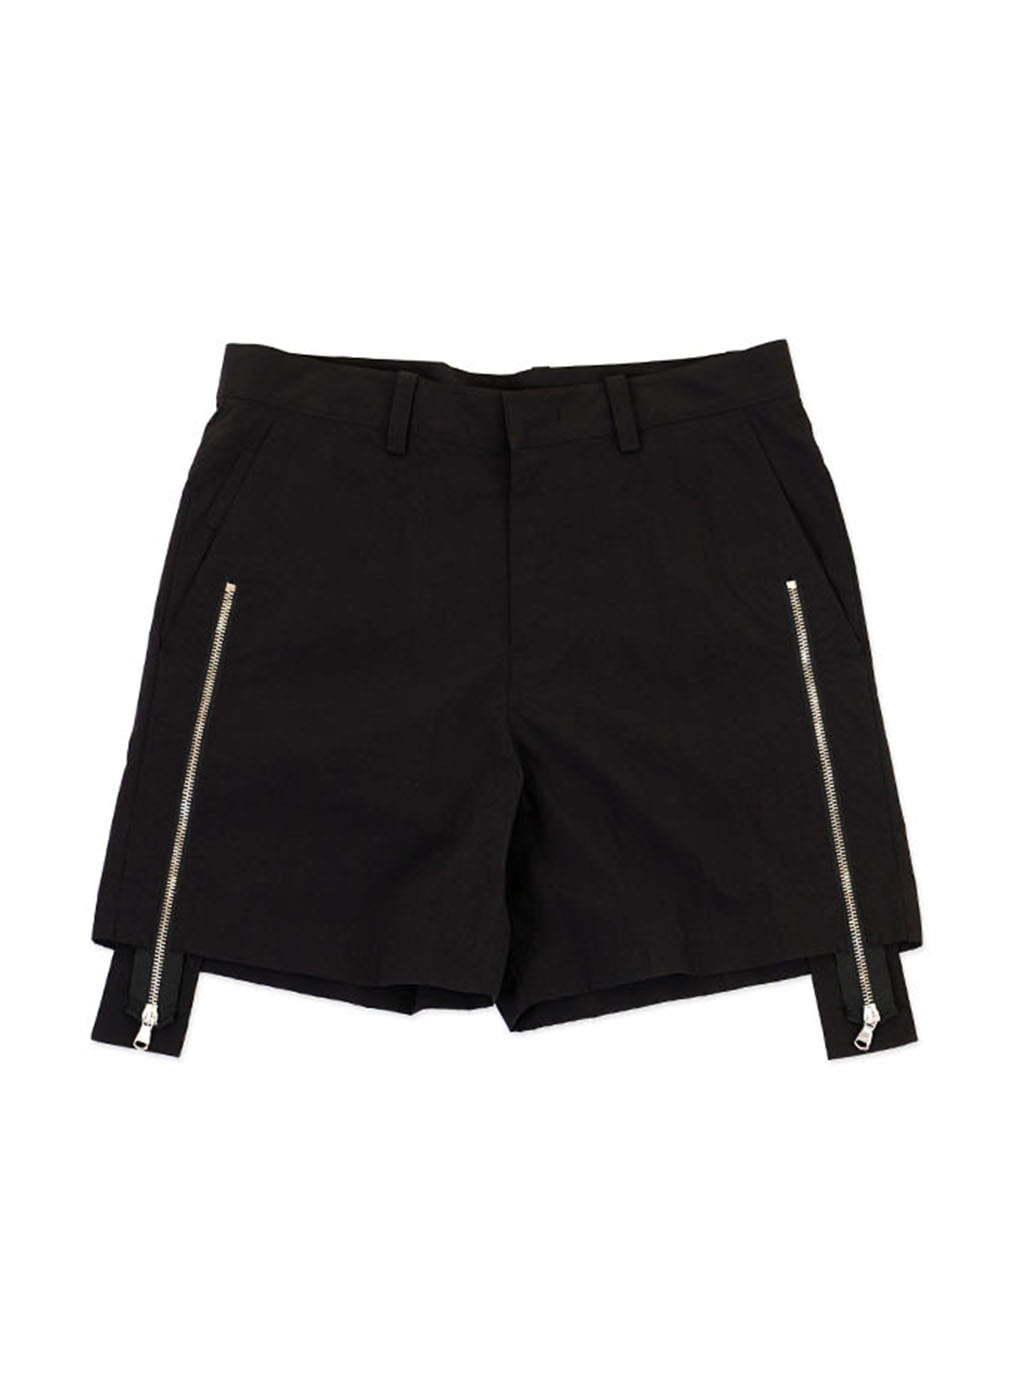 Black Zipper Shorts